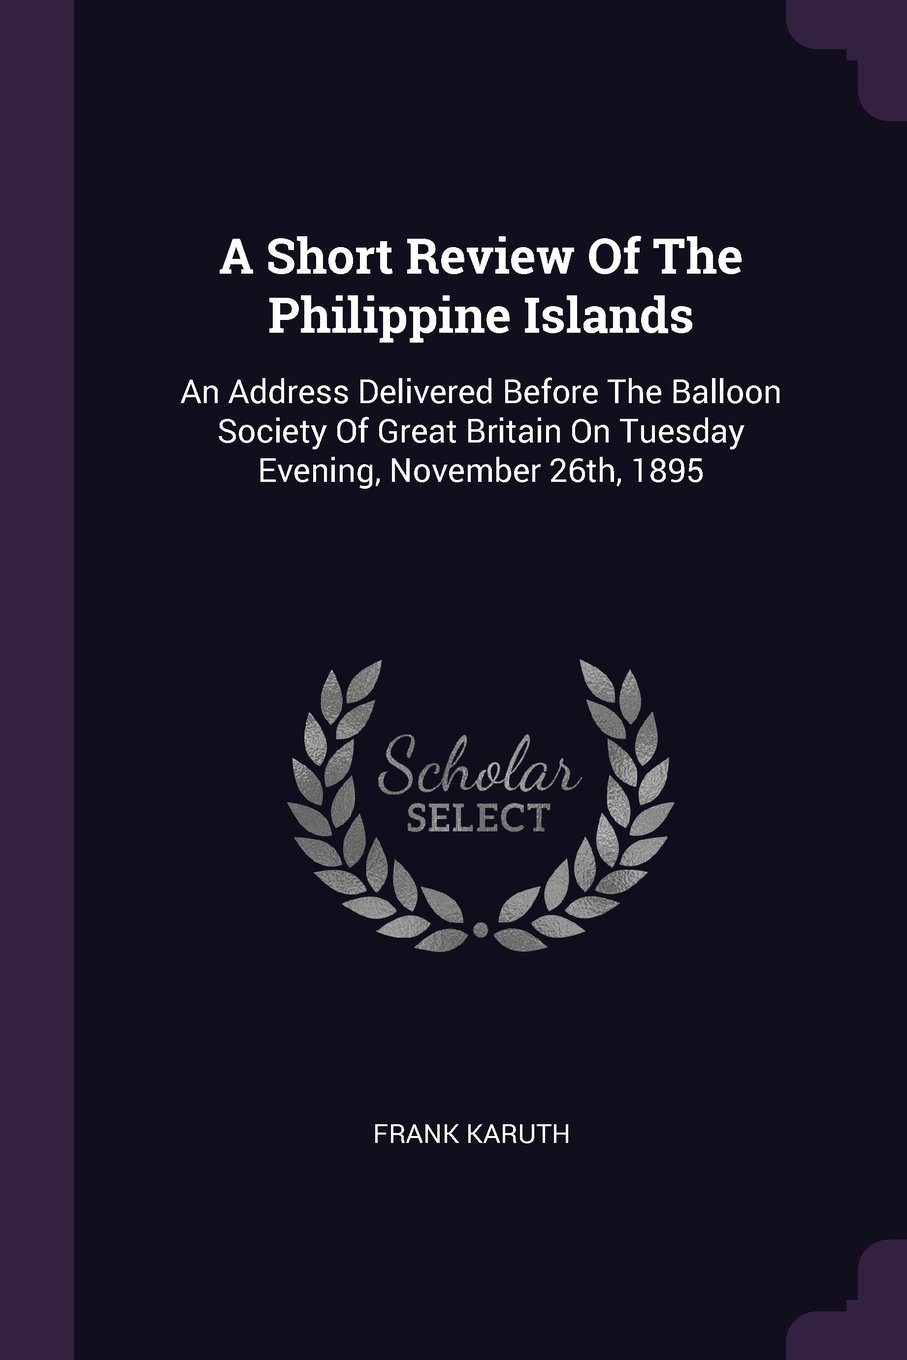 A Short Review Of The Philippine Islands: An Address Delivered Before The Balloon Society Of Great Britain On Tuesday Evening, November 26th, 1895 pdf